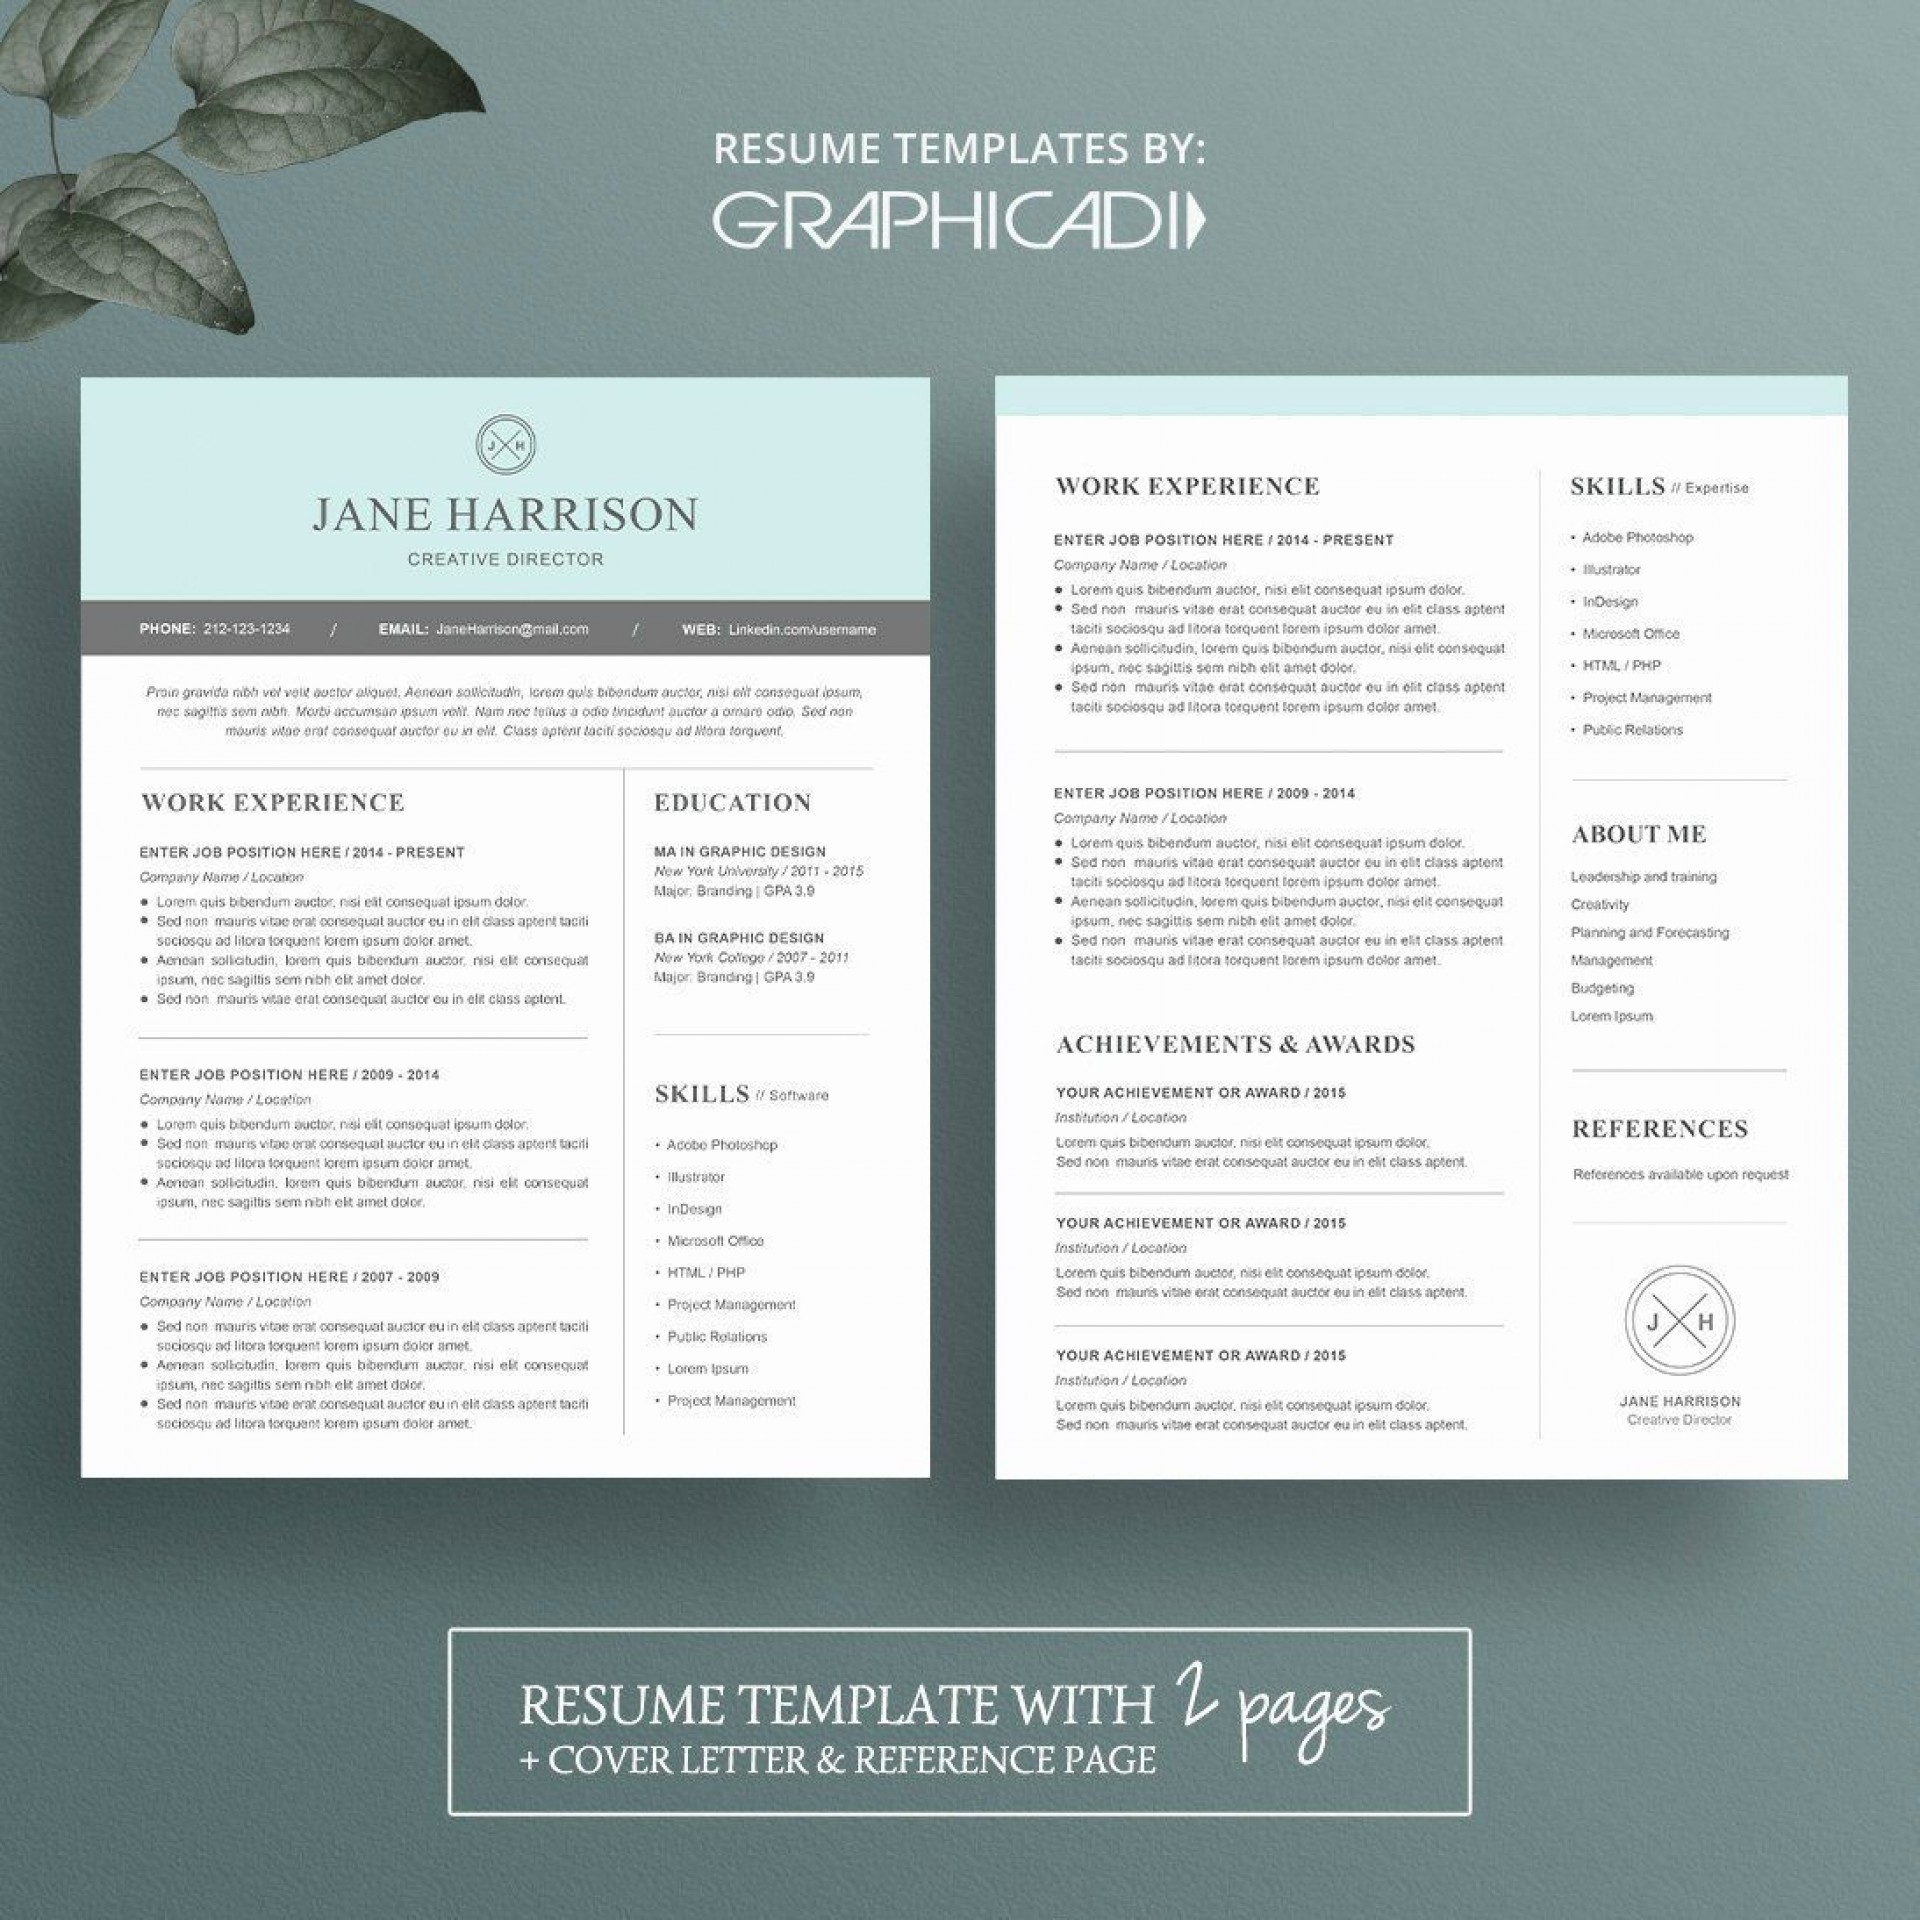 001 Unusual Resume Reference Template Microsoft Word High Resolution  List1920